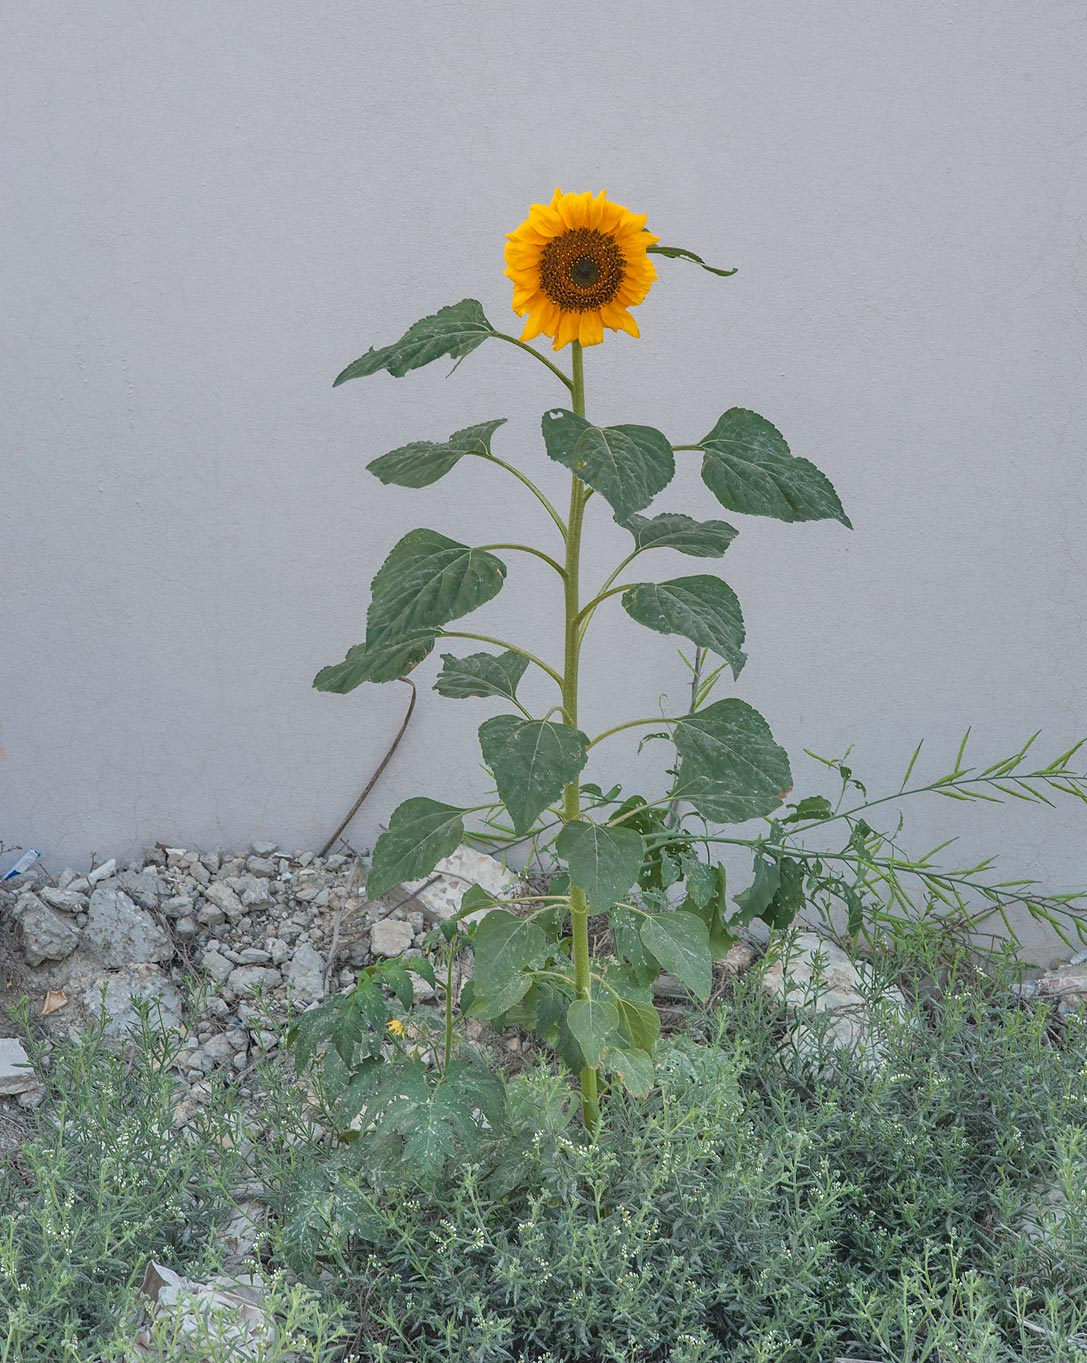 Blooming common sunflower (Helianthus annuus) on...in Um Lekhba neighborhood. Doha, Qatar